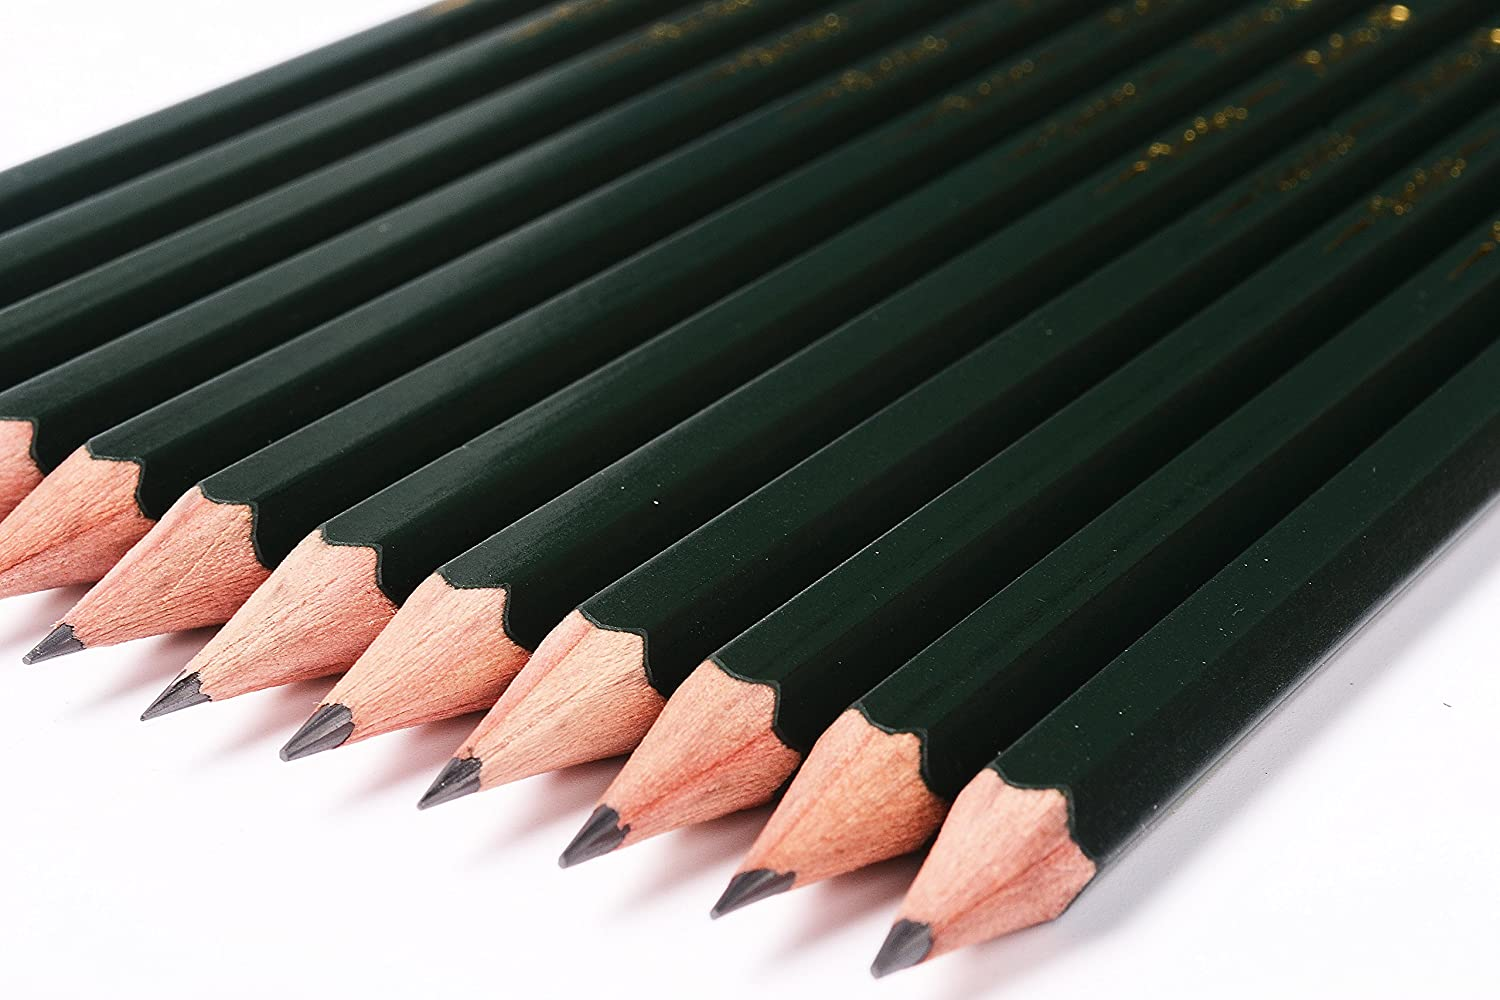 Pasler Professional Graphic Sketching Drawing Pencils 12 Count (6B)